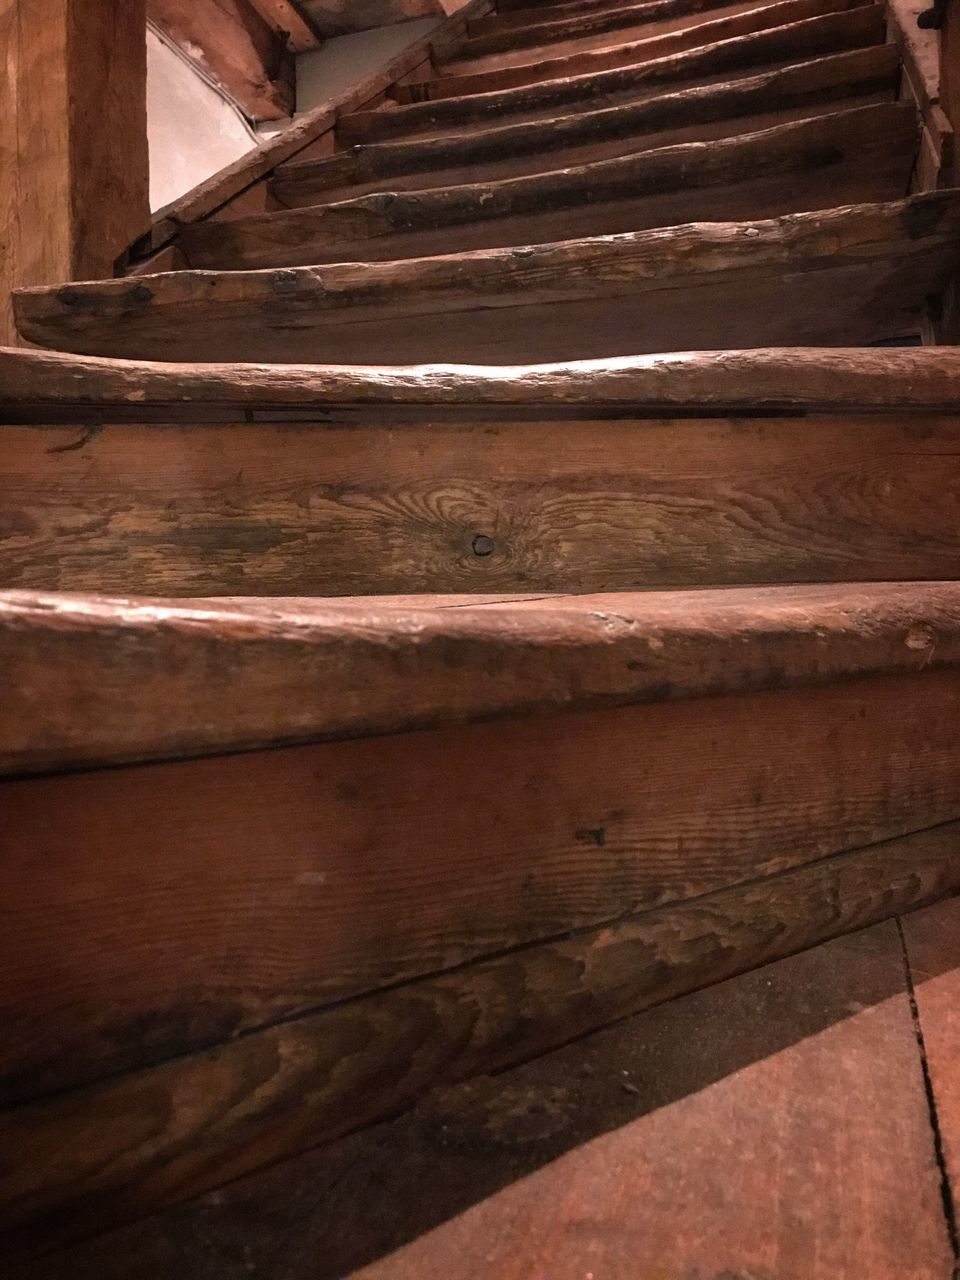 no people, indoors, wood - material, low angle view, day, architecture, close-up